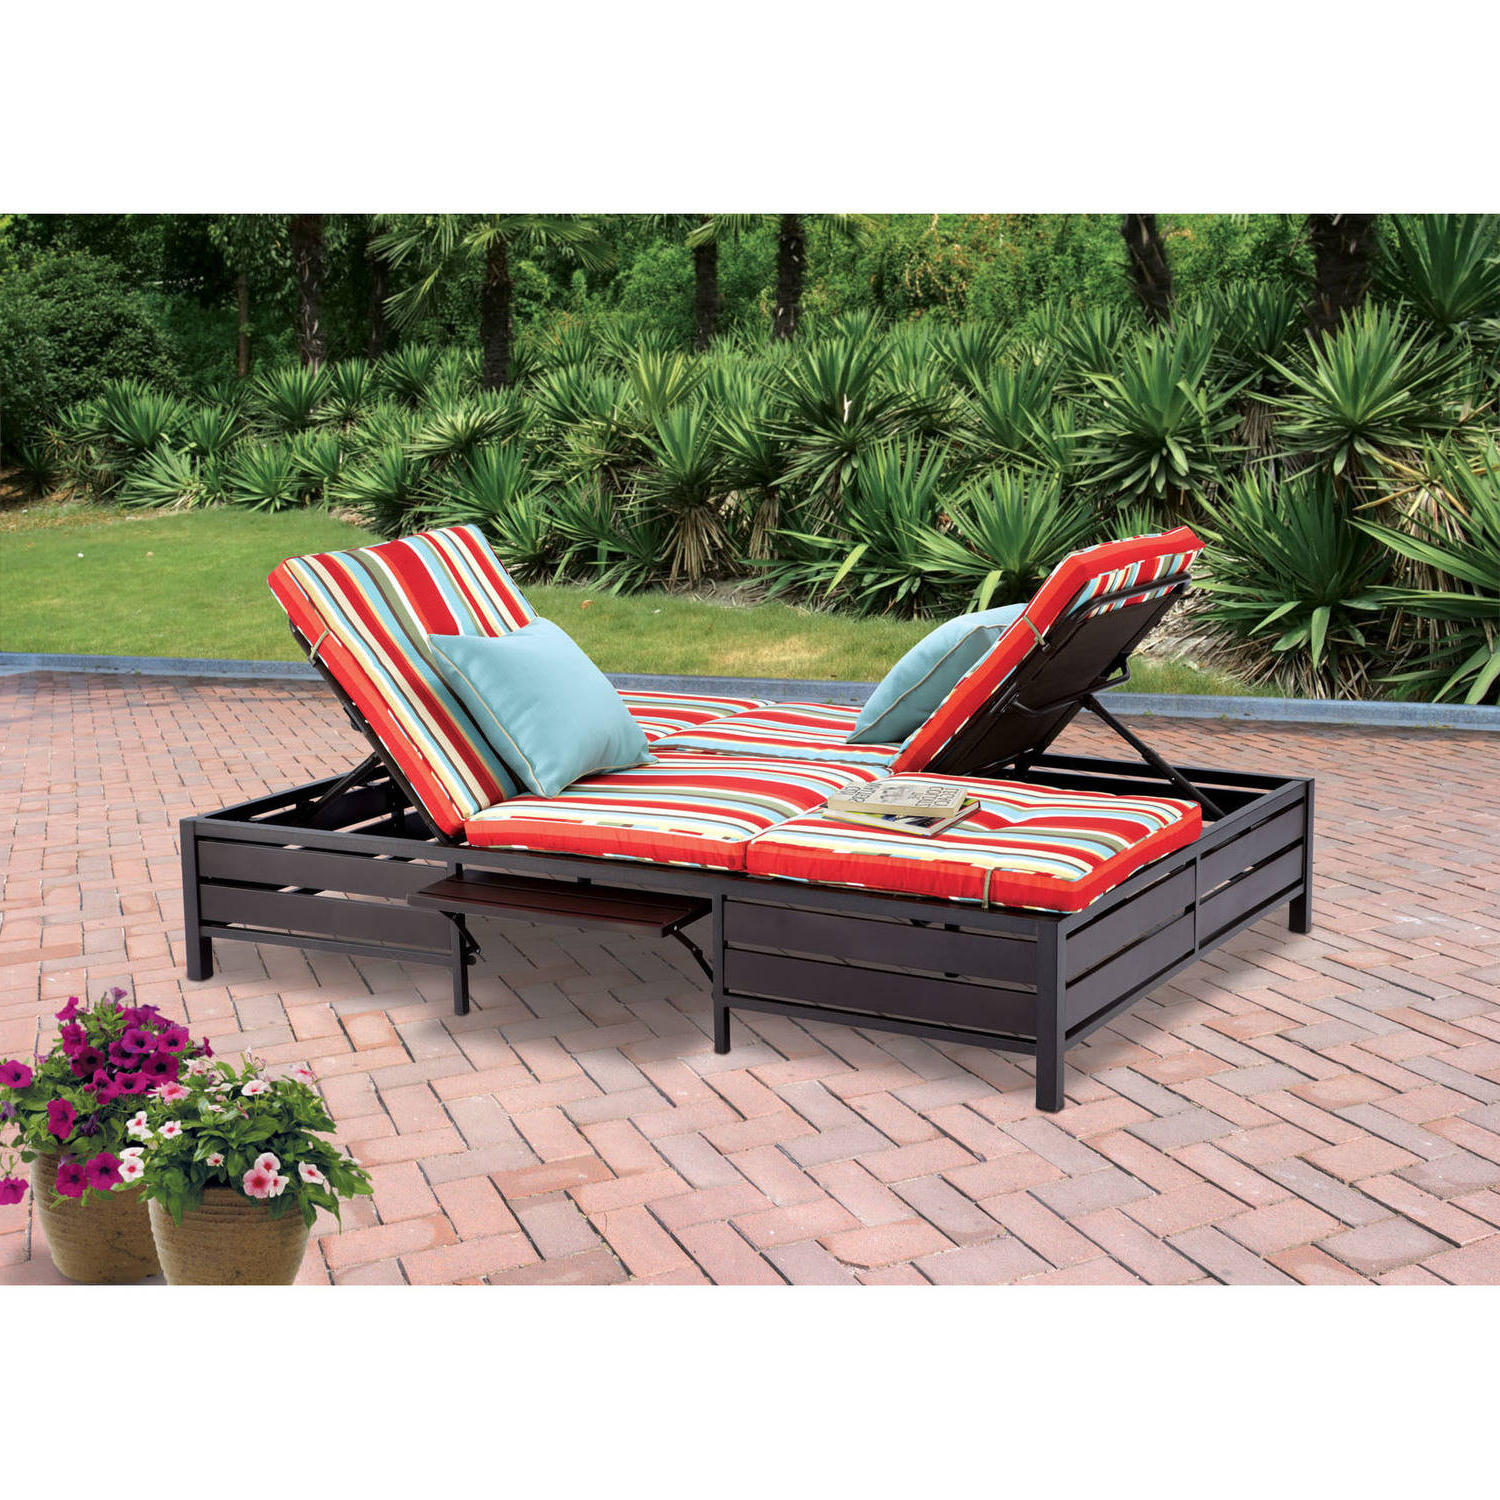 Most Popular Mainstays Outdoor Double Chaise Lounger, Stripe, Seats 2 Pertaining To Resin Wicker Multi Position Double Patio Chaise Lounges (View 4 of 25)